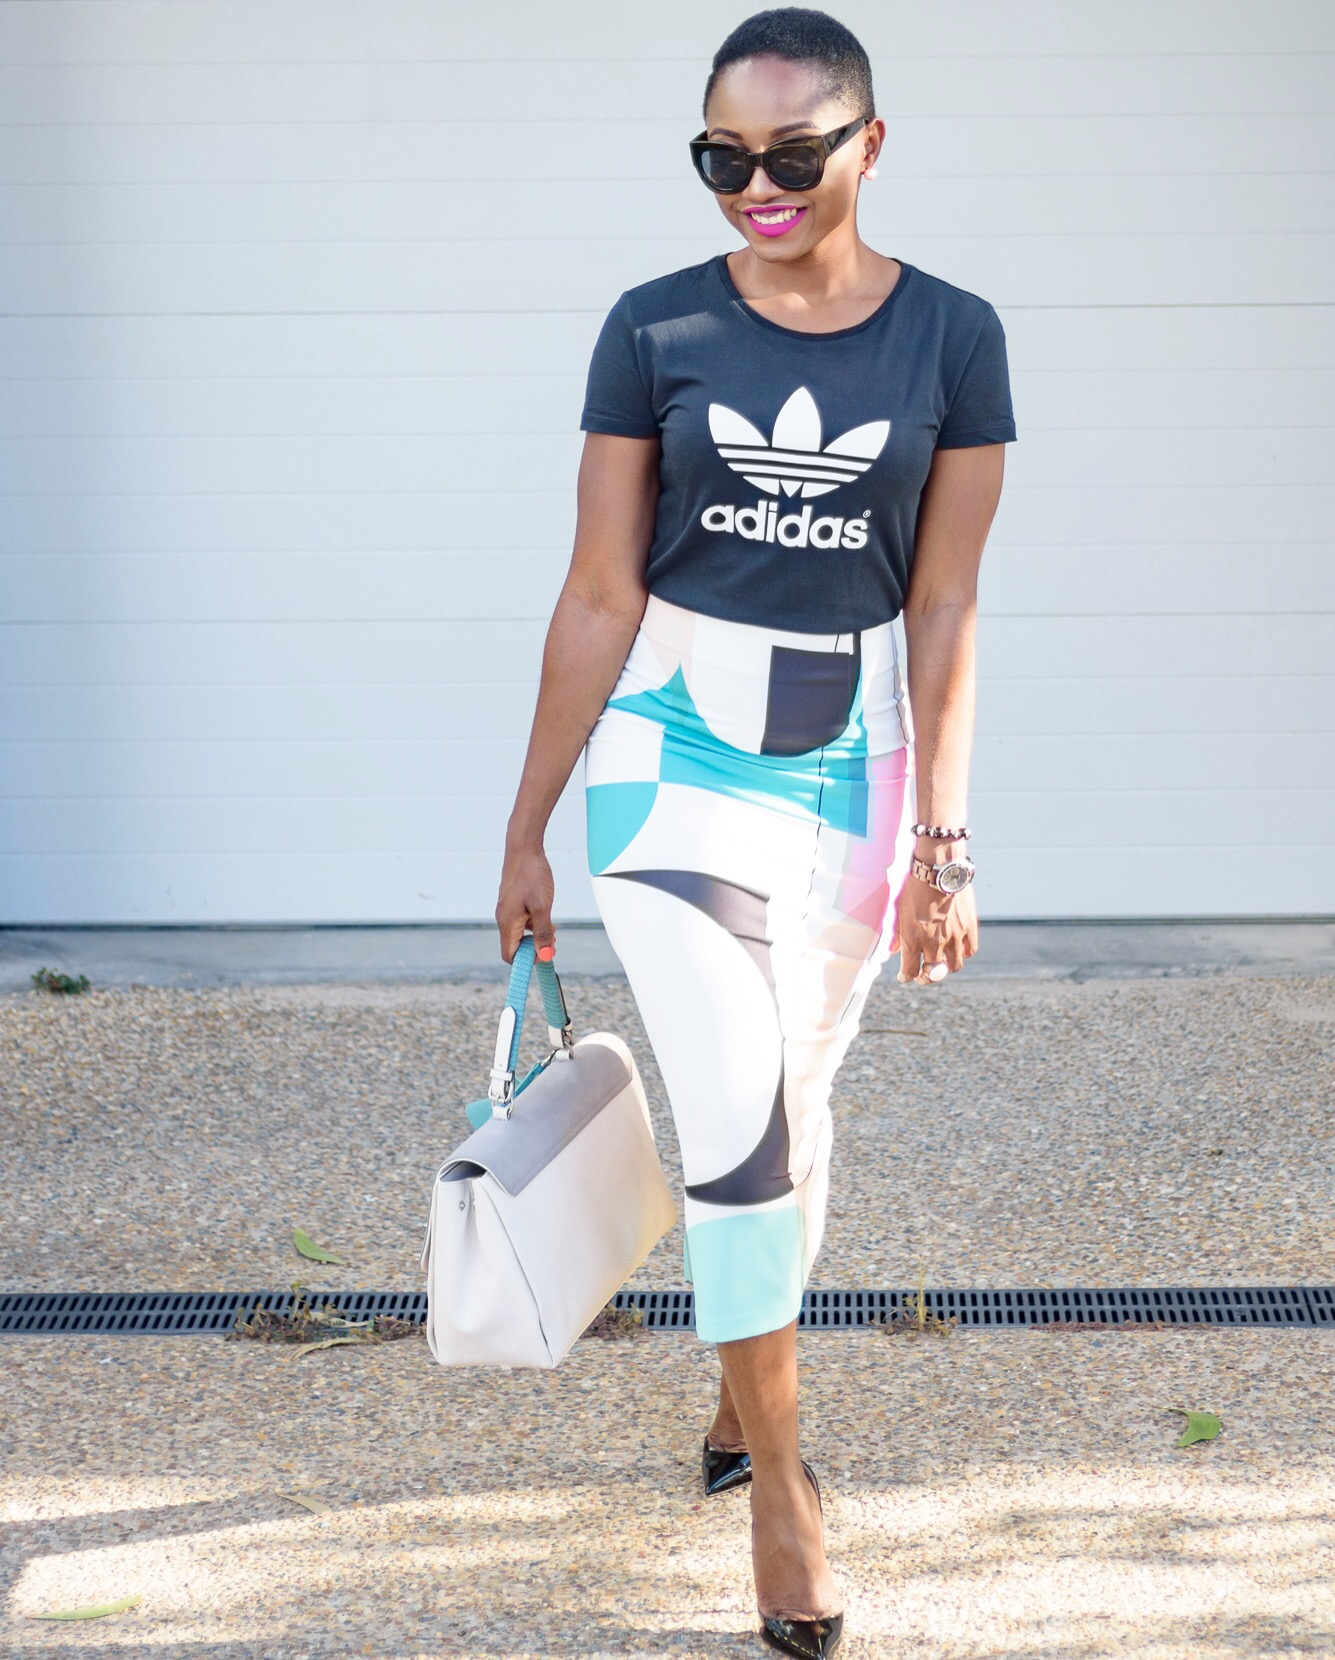 Sporty chic…… with my adidas tee